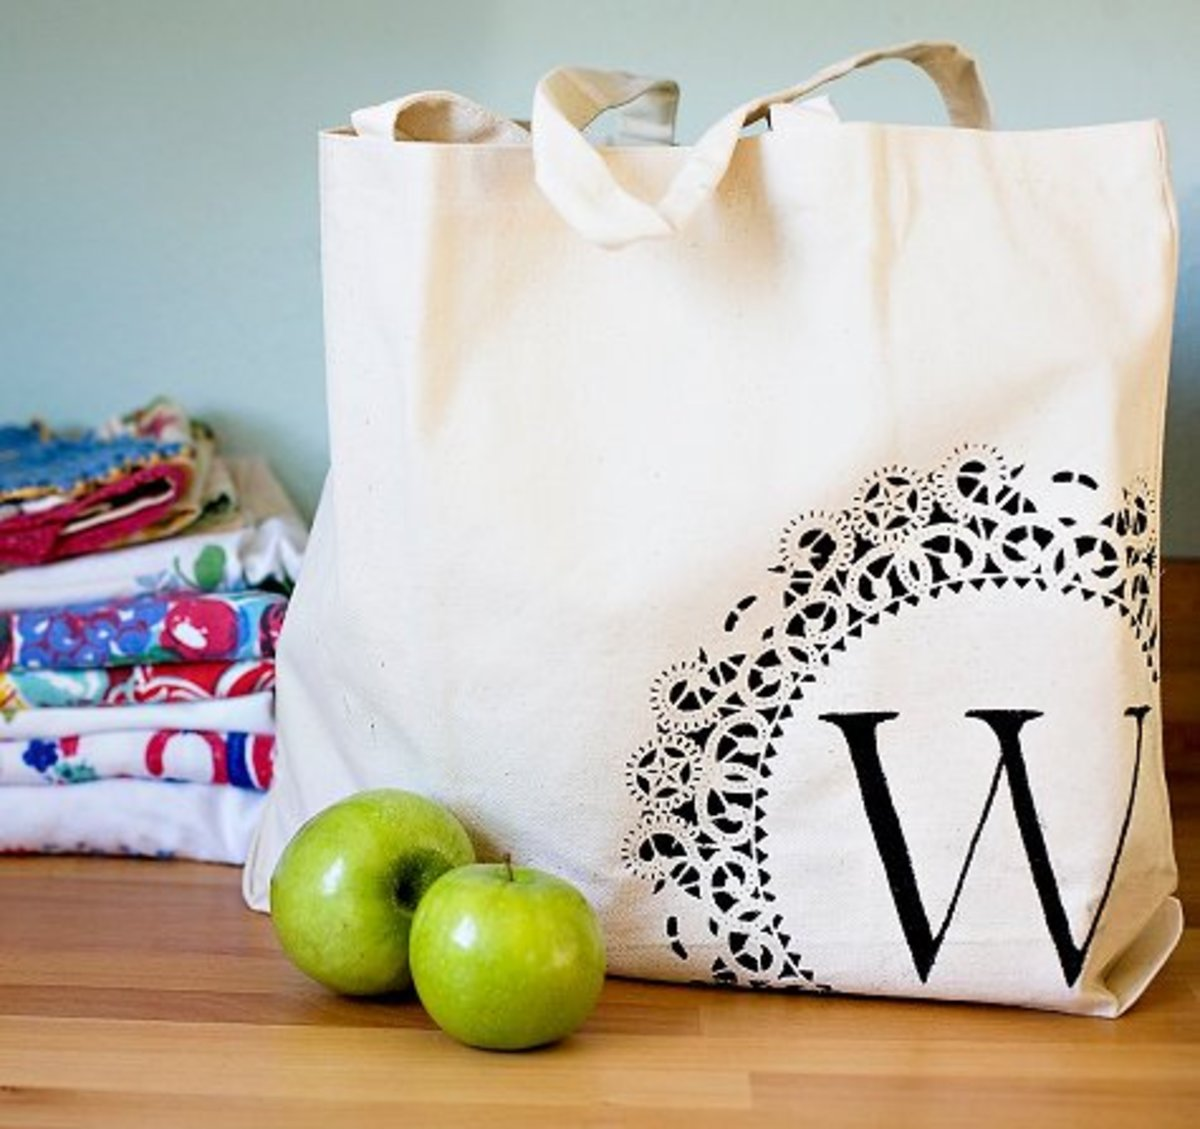 Buying a cheap plain tote bag and personalizing it with fabric paint is a great idea for a gift!